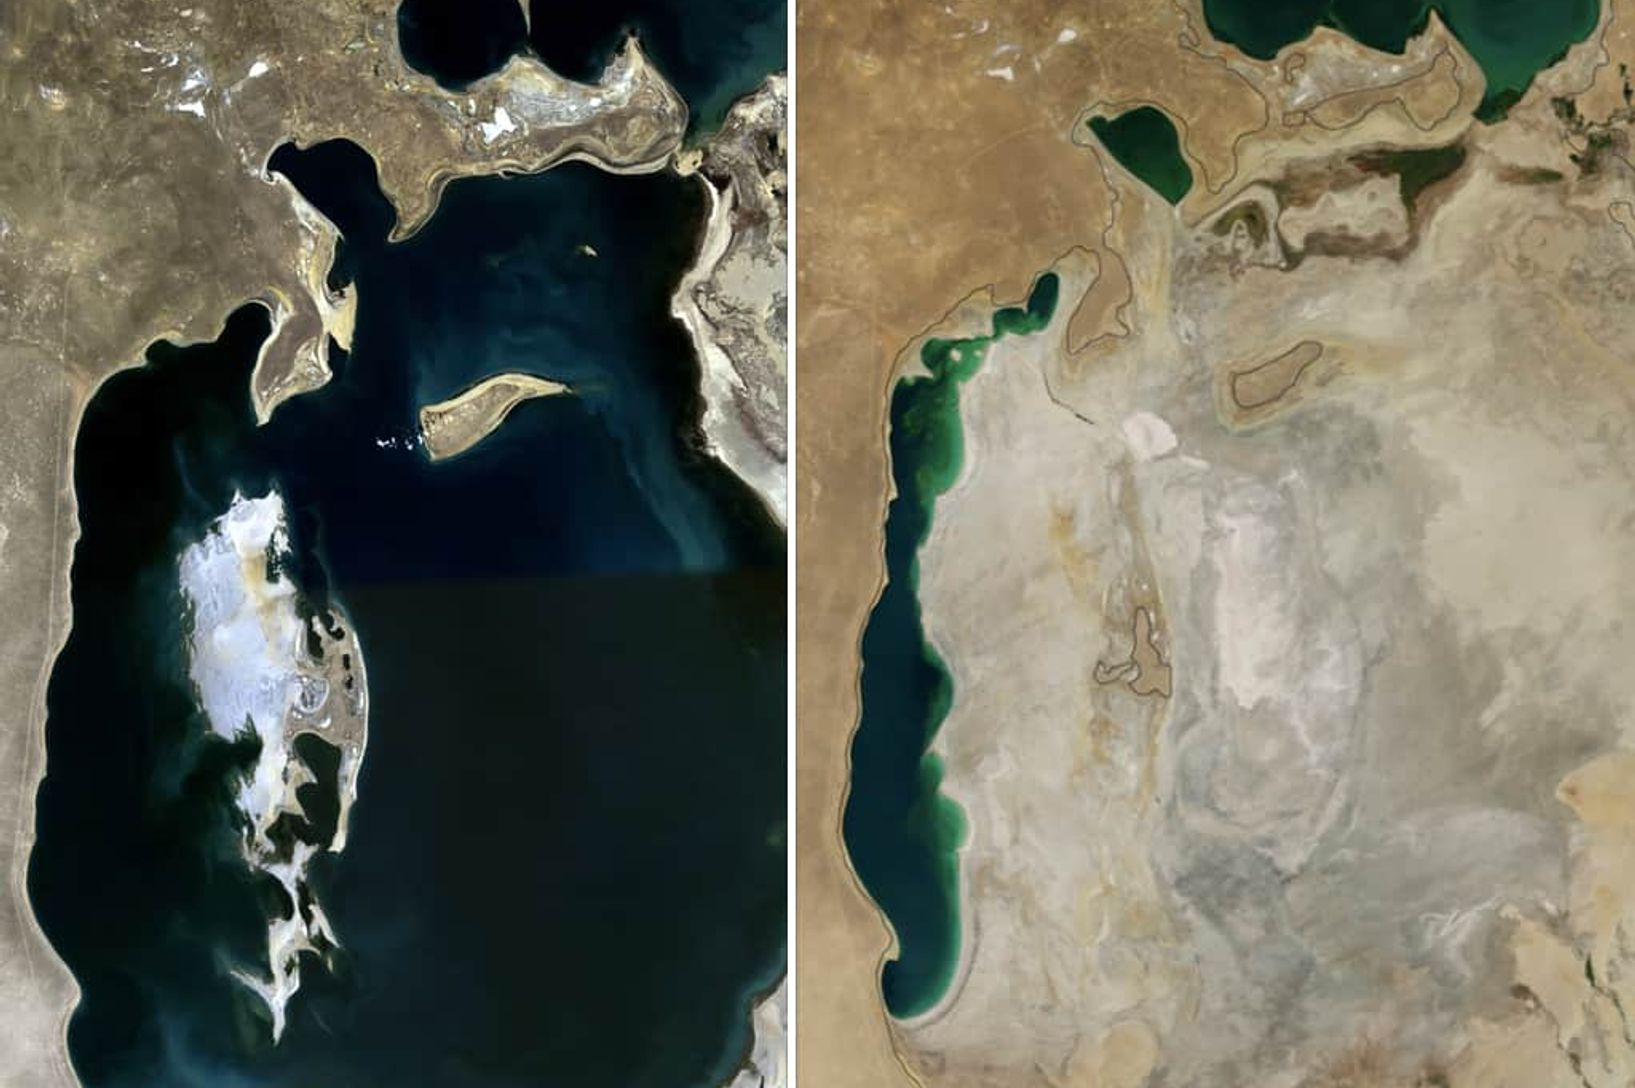 The fourth-largest freshwater lake, The Aral Sea, dried up, but what does this have to do with clothing?